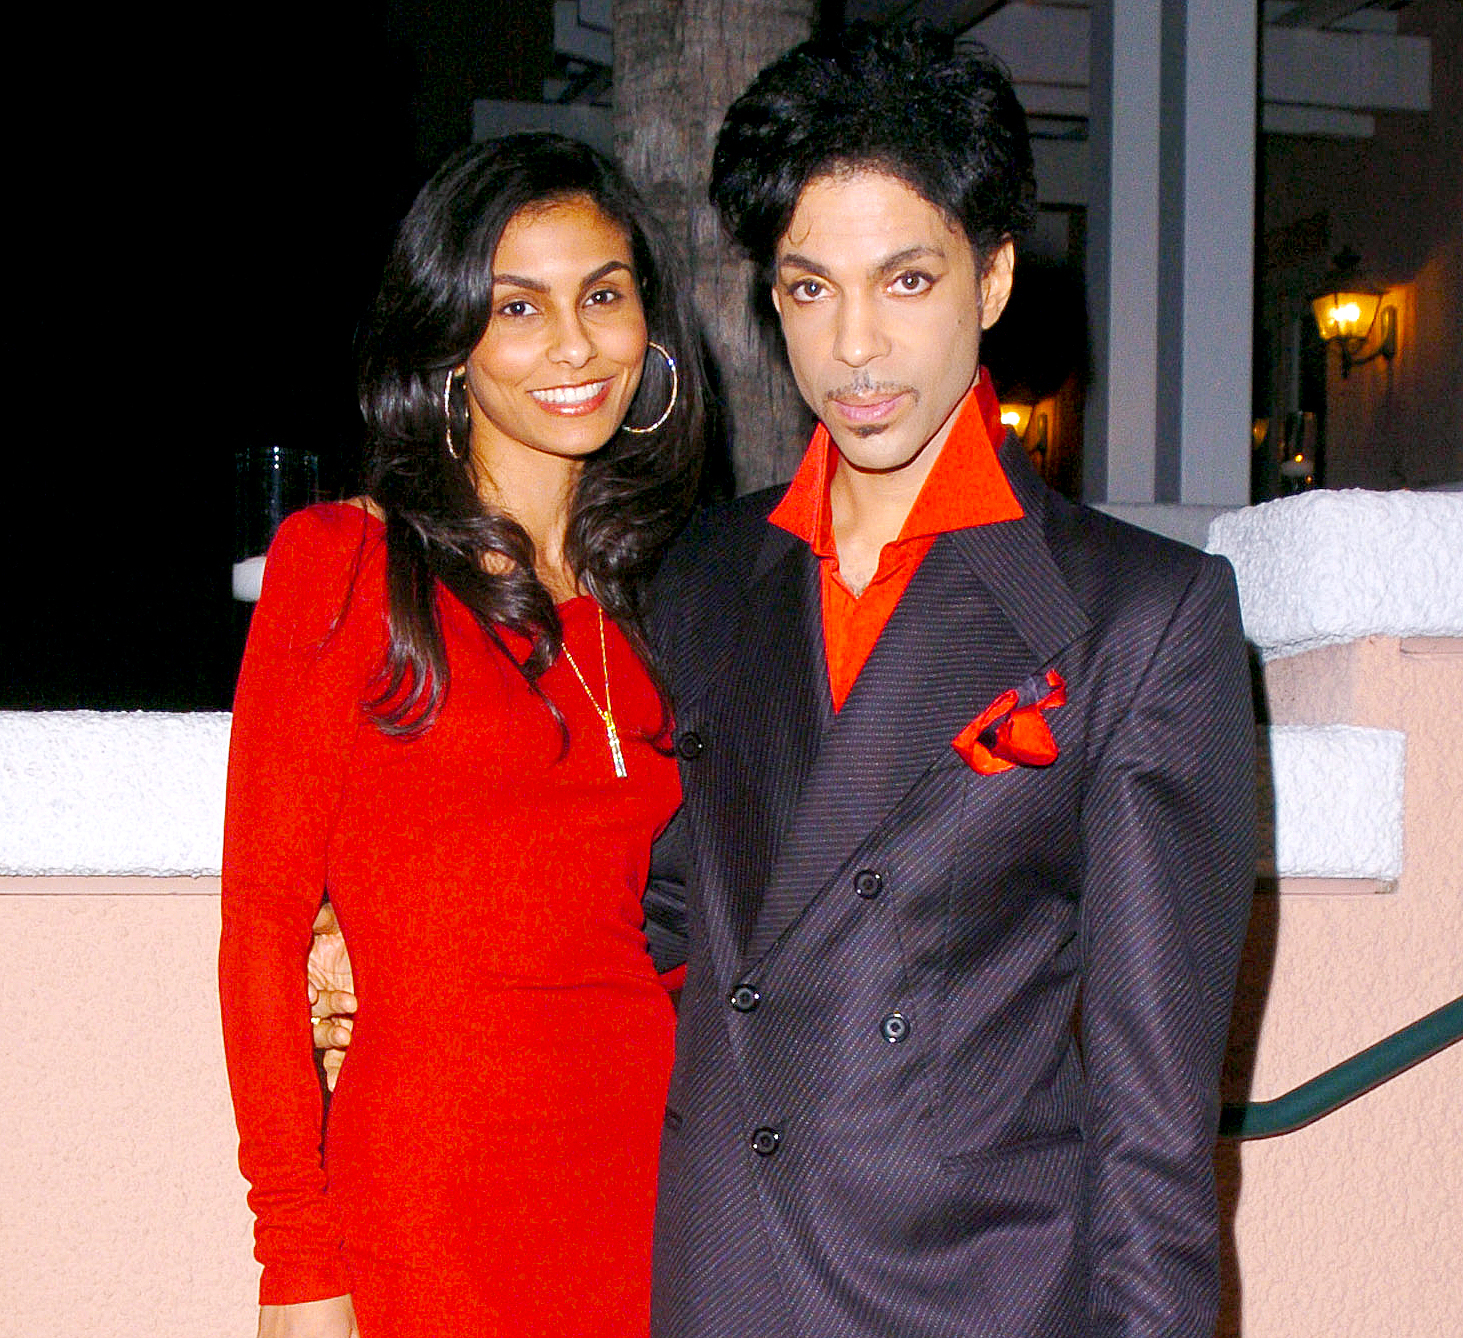 Manuela Testolini and Prince during Clive Davis' 2005 Pre-Grammy Awards Party.